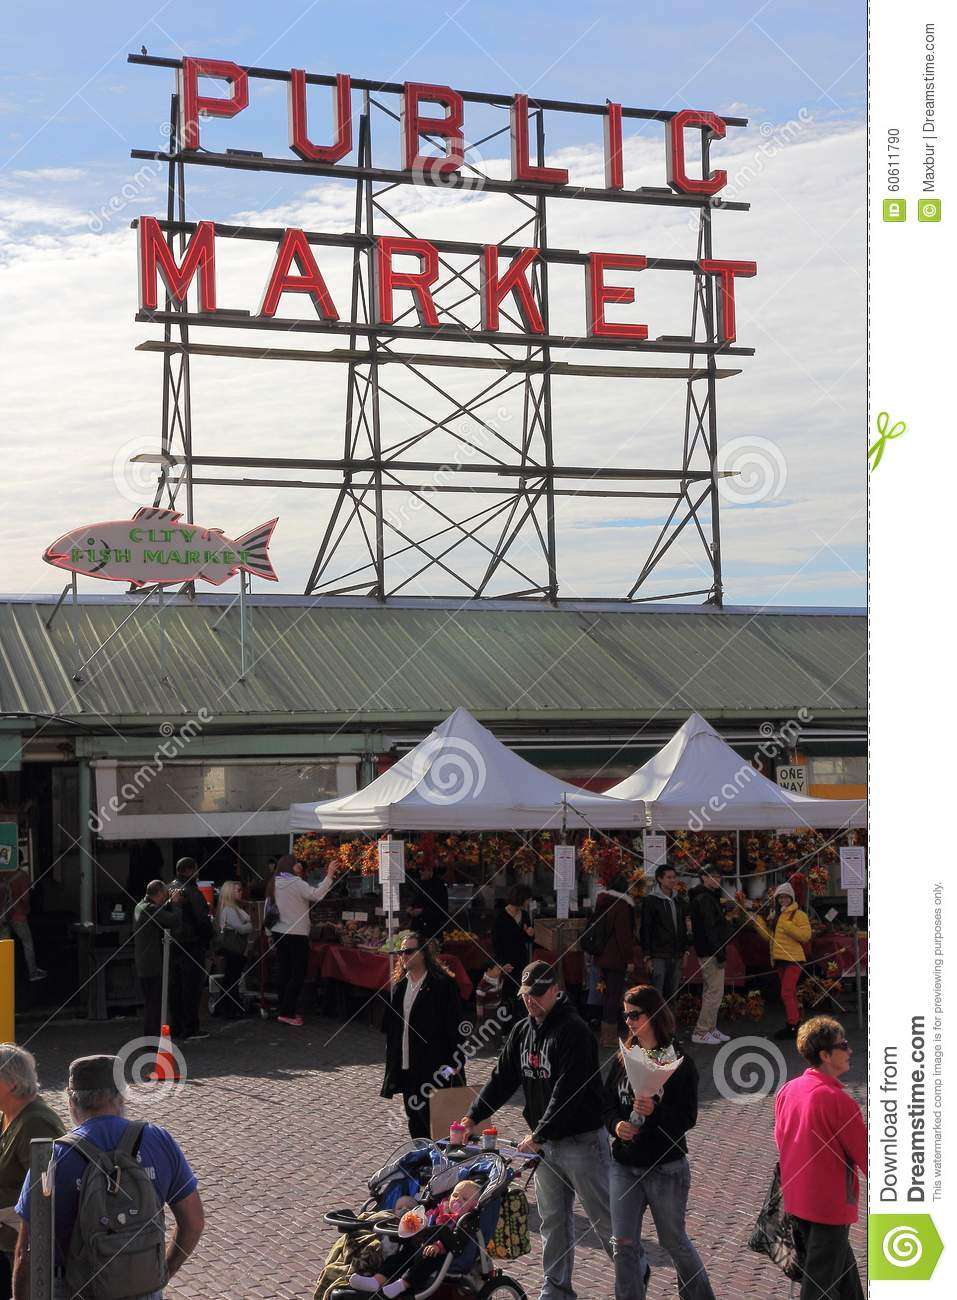 Famous public fish market editorial image image 60611790 for Famous fish market in seattle